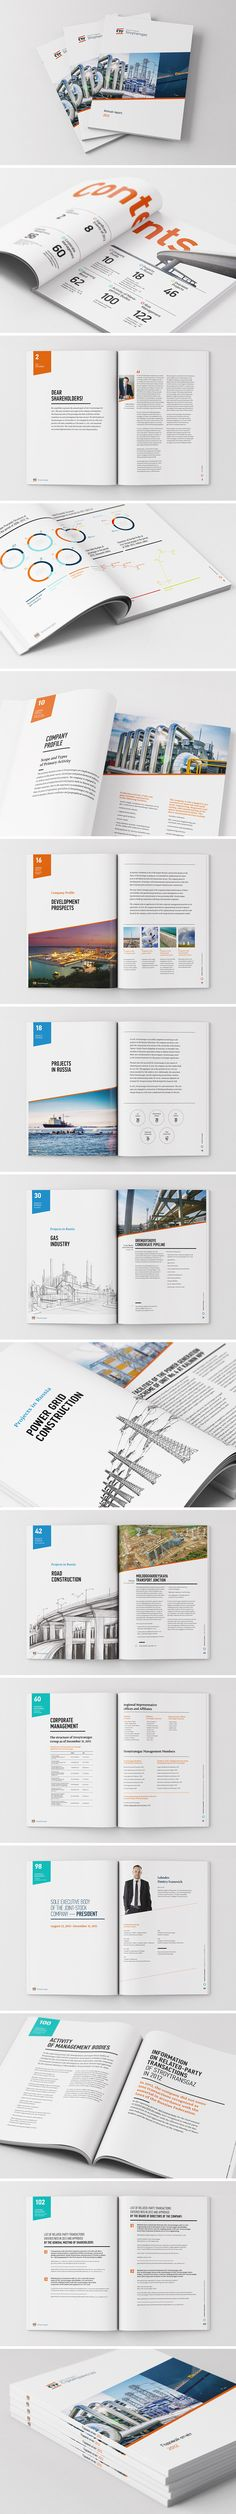 Stroytransgaz annual report on Behance